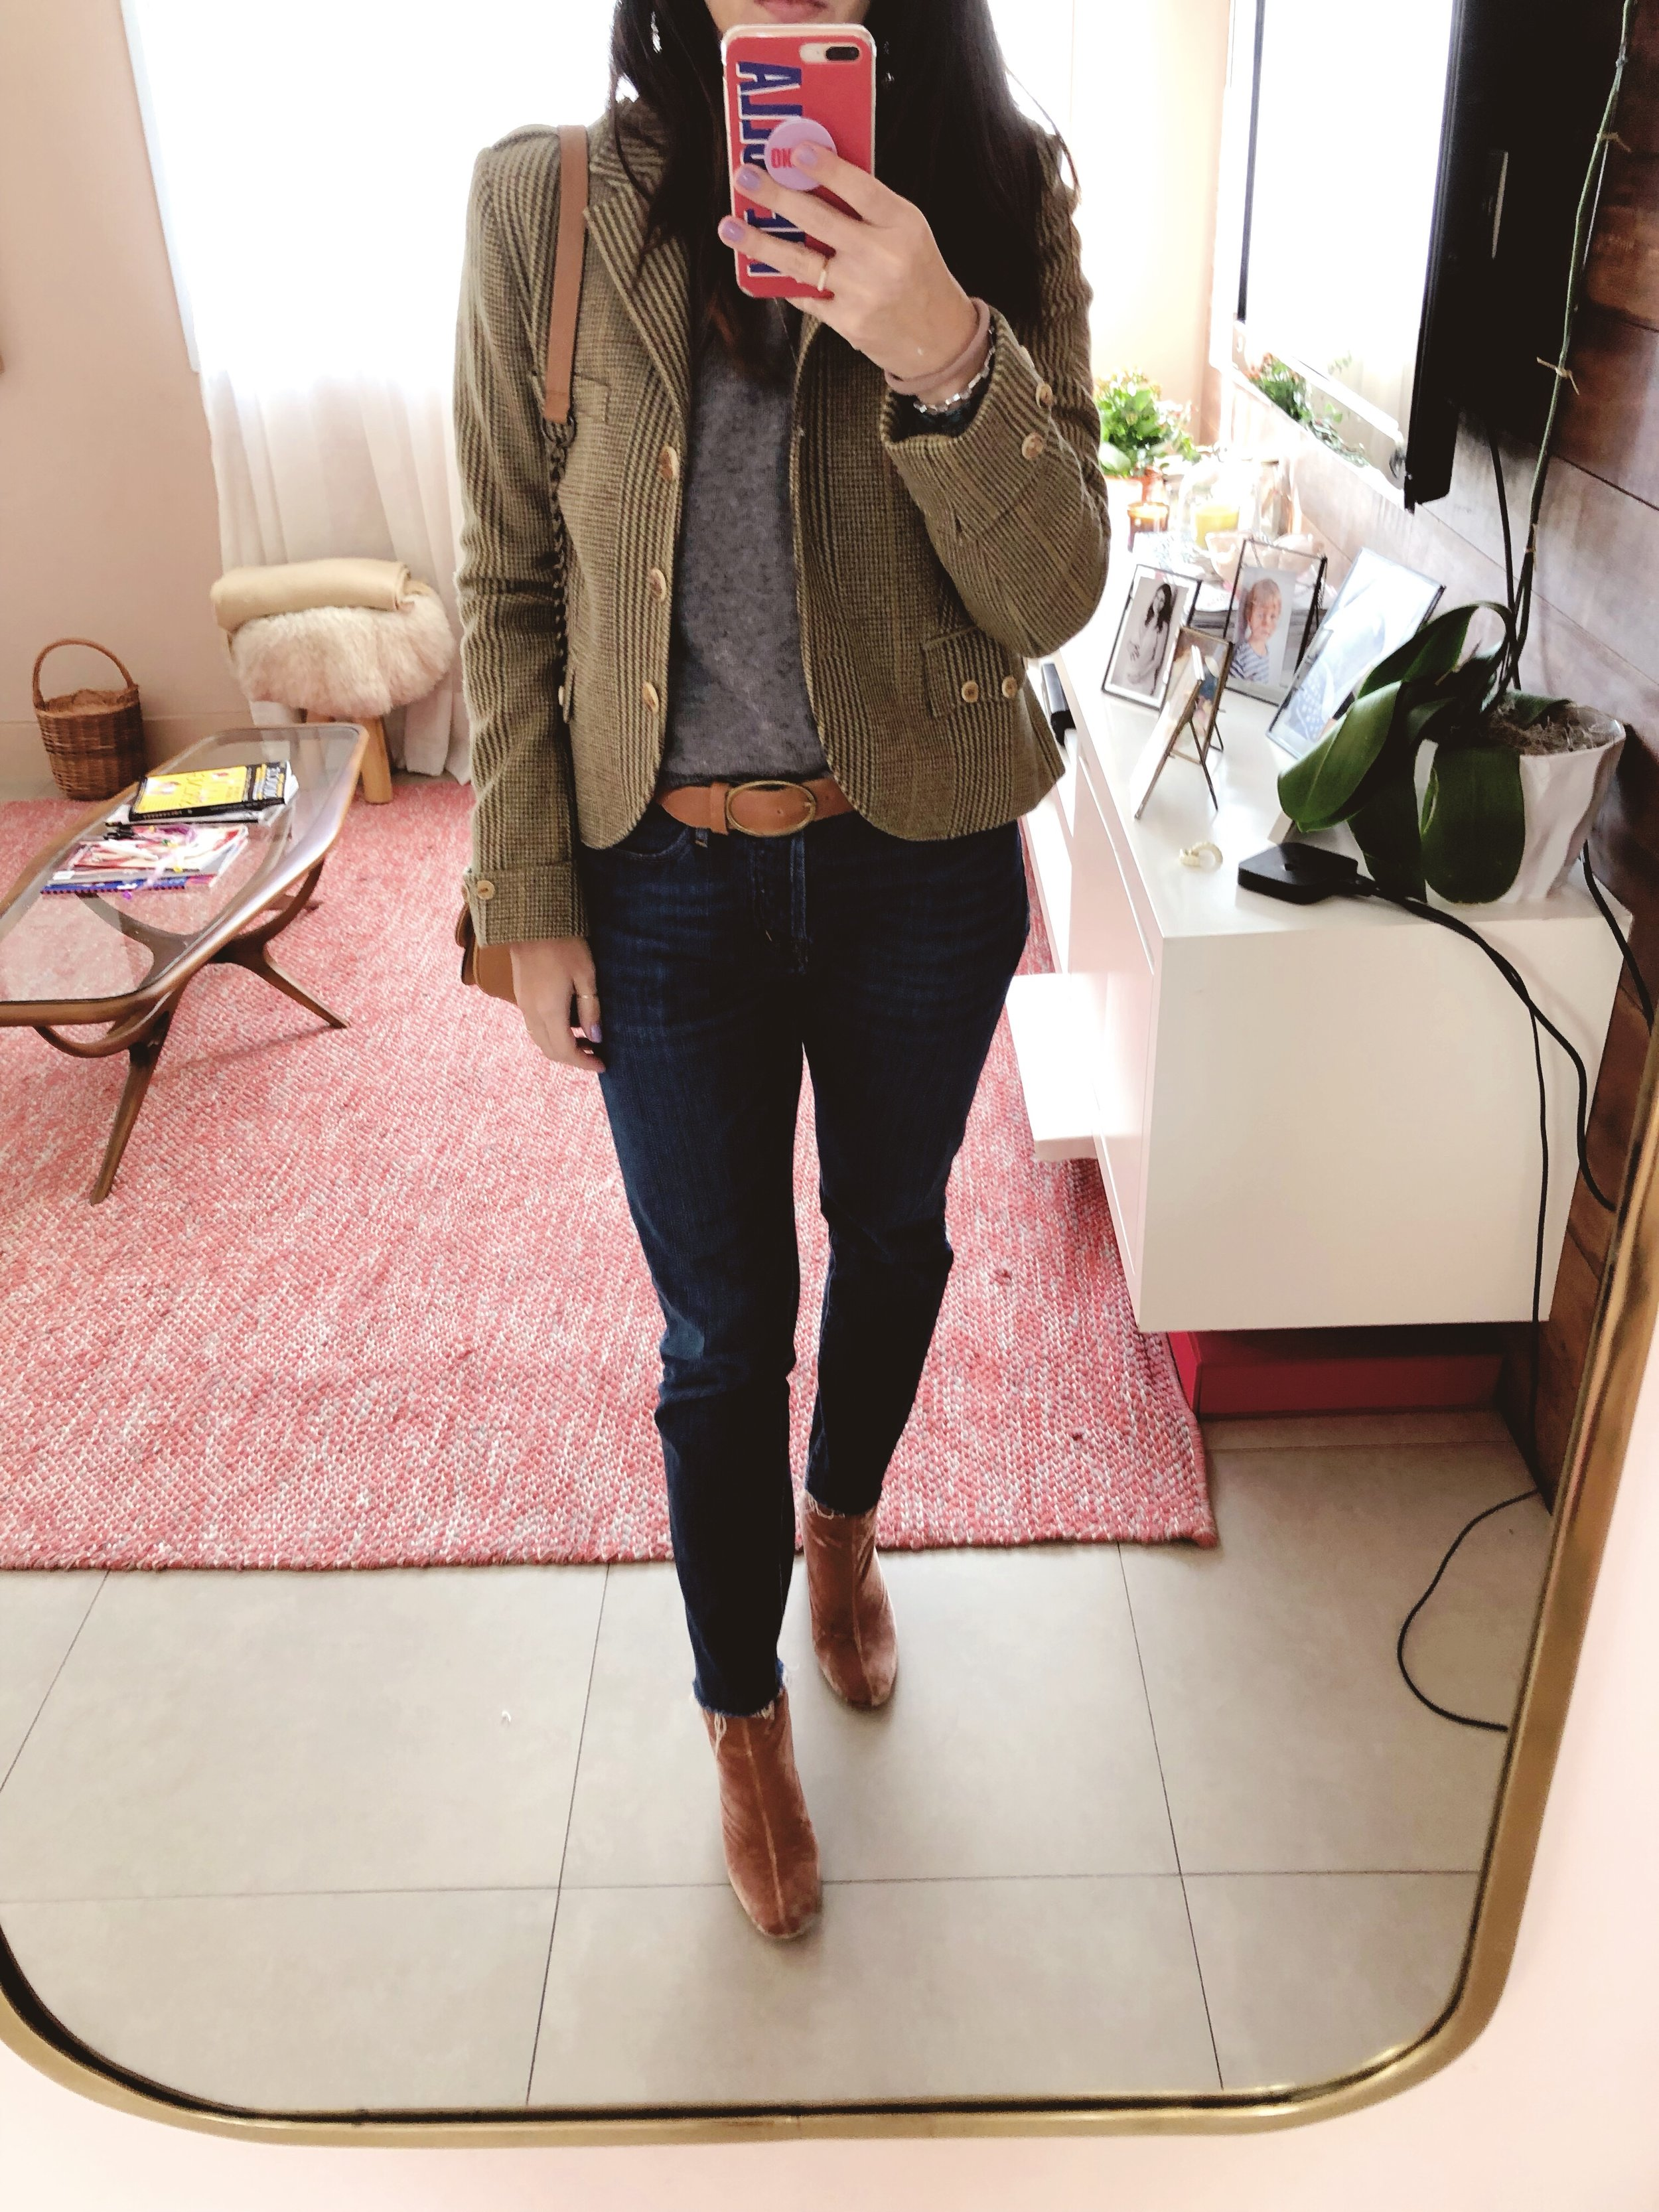 ACS 0488 - A Week of Outfits